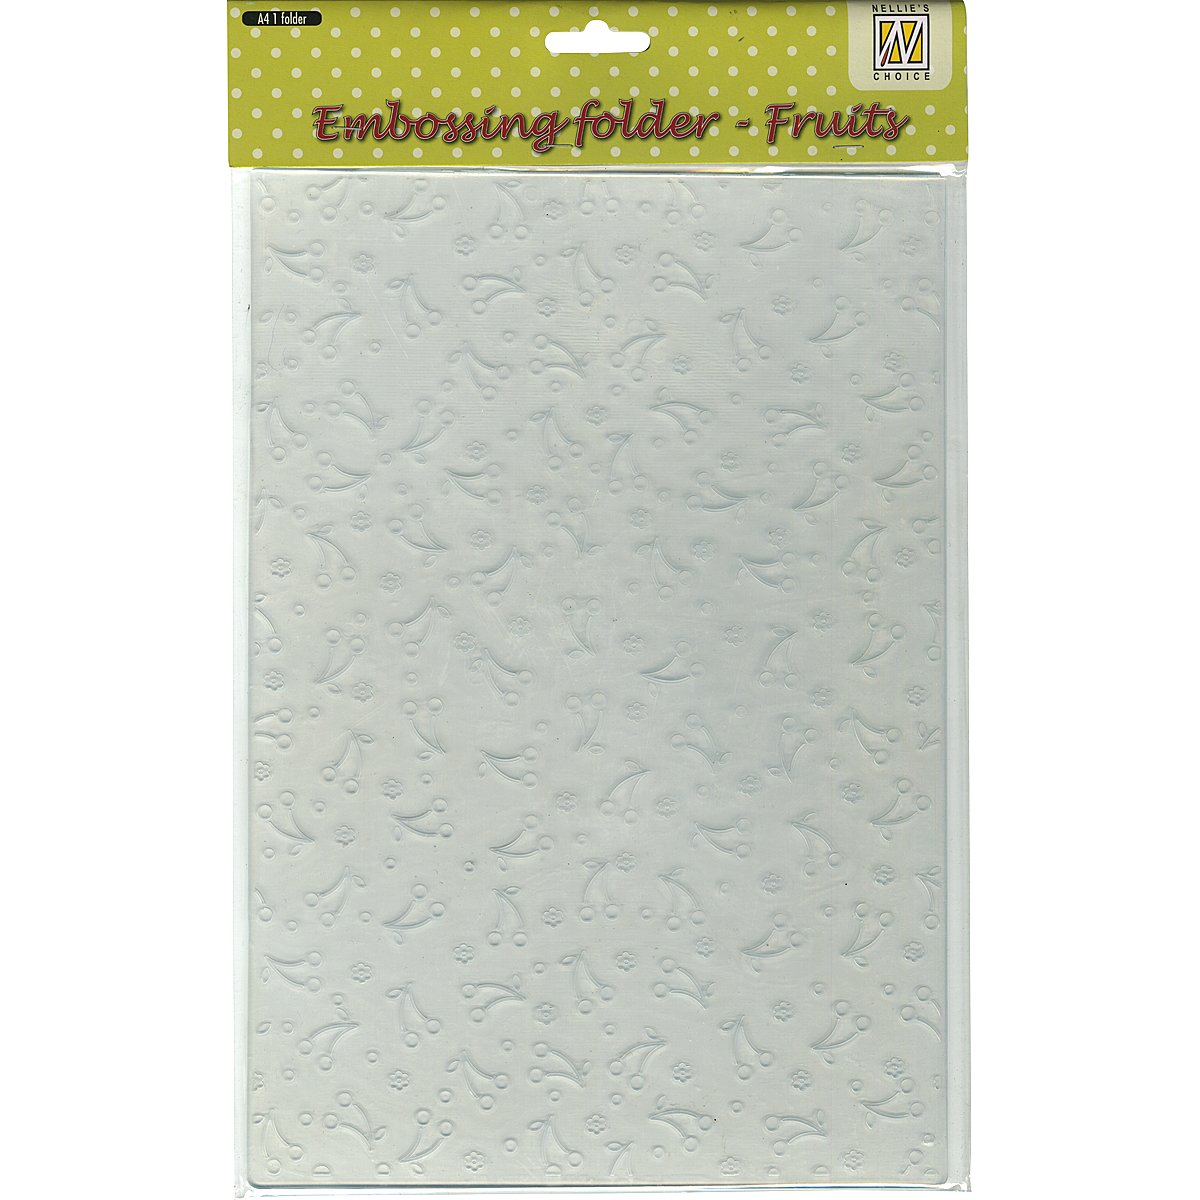 Ecstasy Crafts Nellie's Choice A4 Embossing Folder-Fruits/Cherries, 8.25 by 11.875-Inch by Ecstasy Crafts